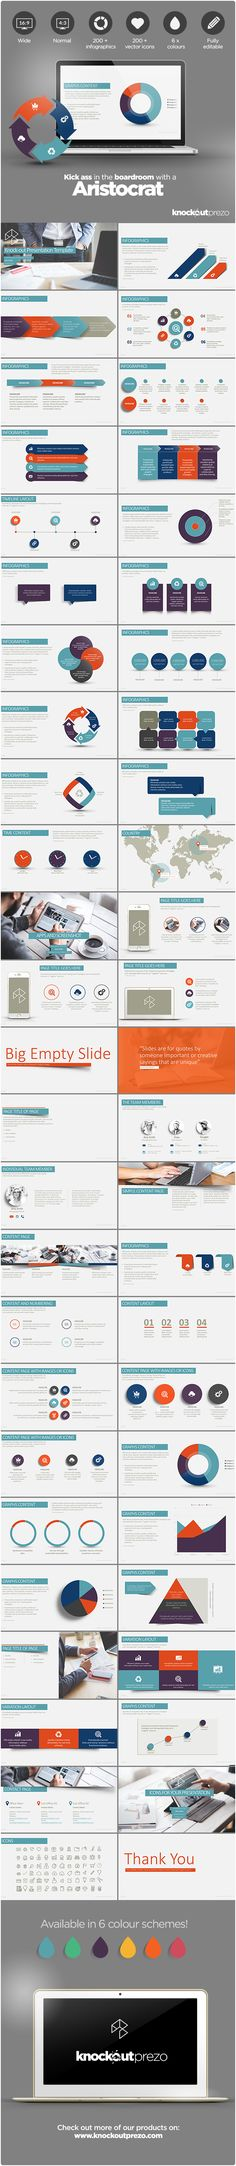 Aristocrat PowerPoint Template. Download here: http://graphicriver.net/item/aristocrat-powerpoint-template/16079385?ref=ksioks